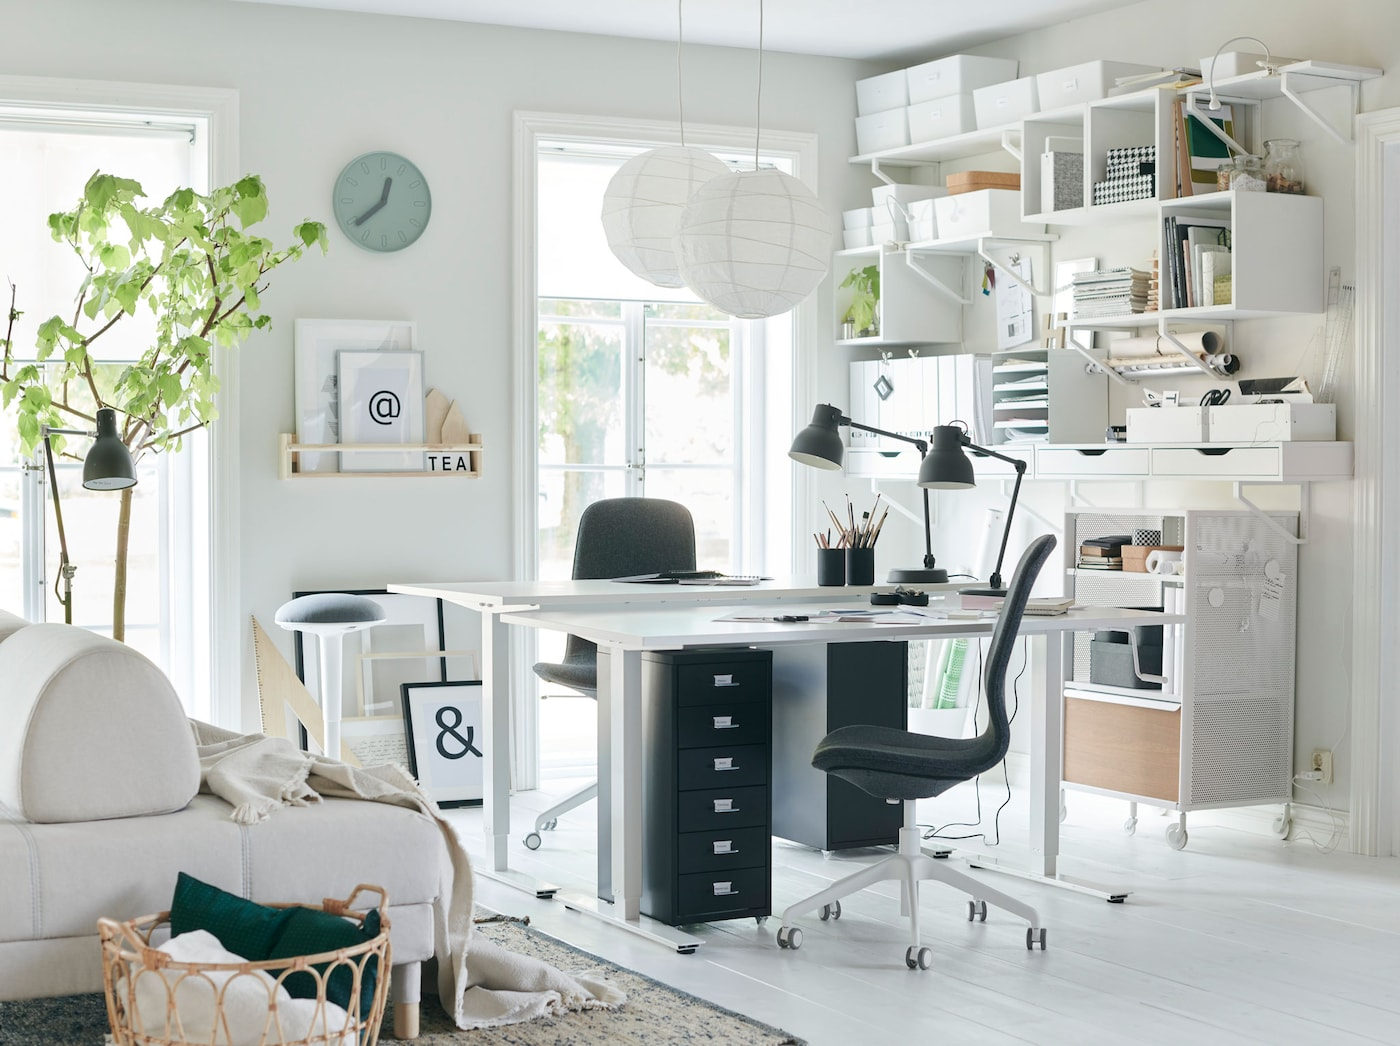 This all-white home office stays organised with a wall for storage using IKEA EKBY storage cabinets and wall shelves. Let in some light and get to work!